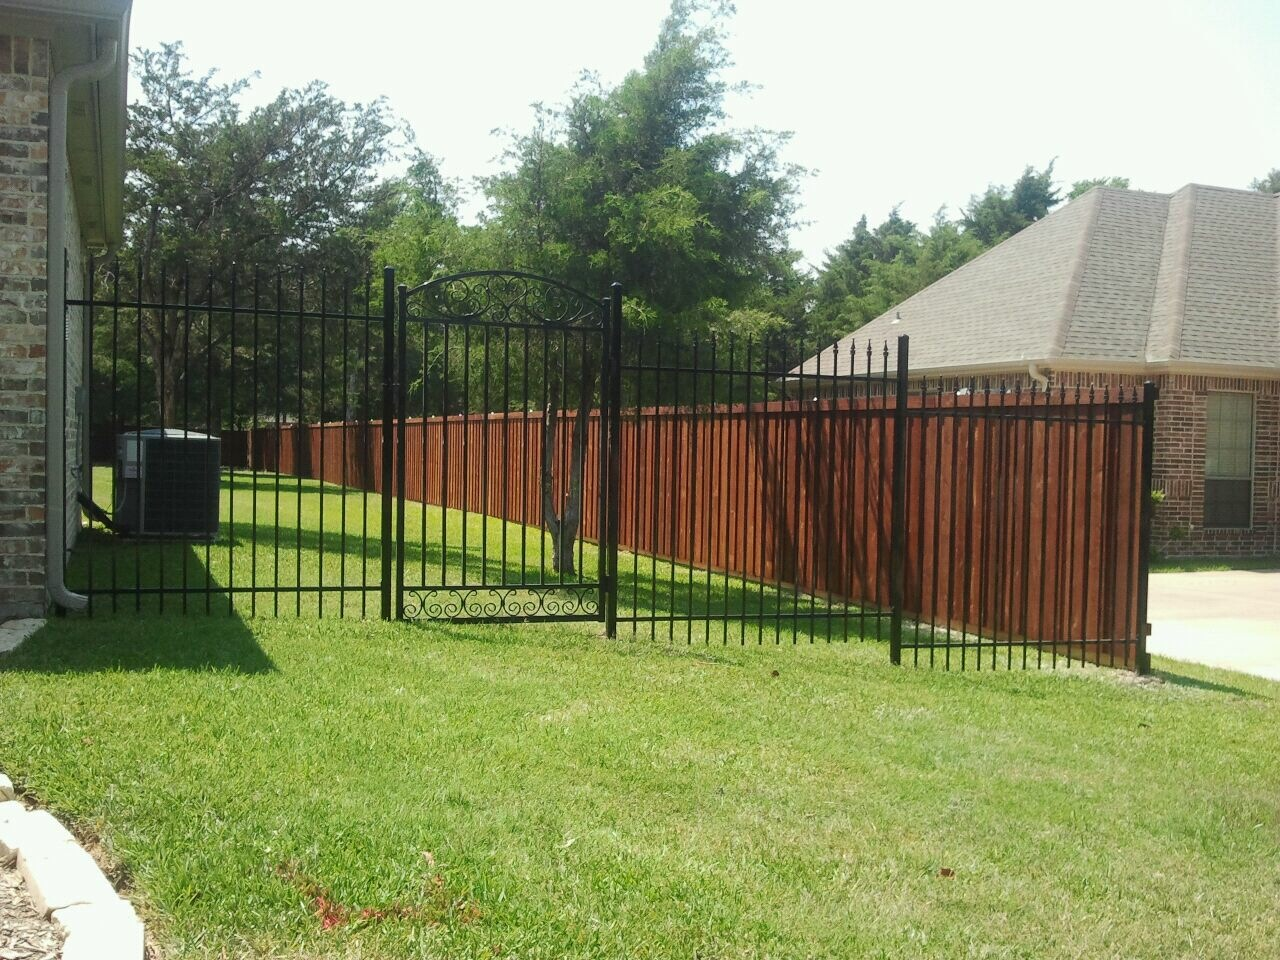 20 Foot Wrought Iron Fence with Single Entracne Gate - Fencing